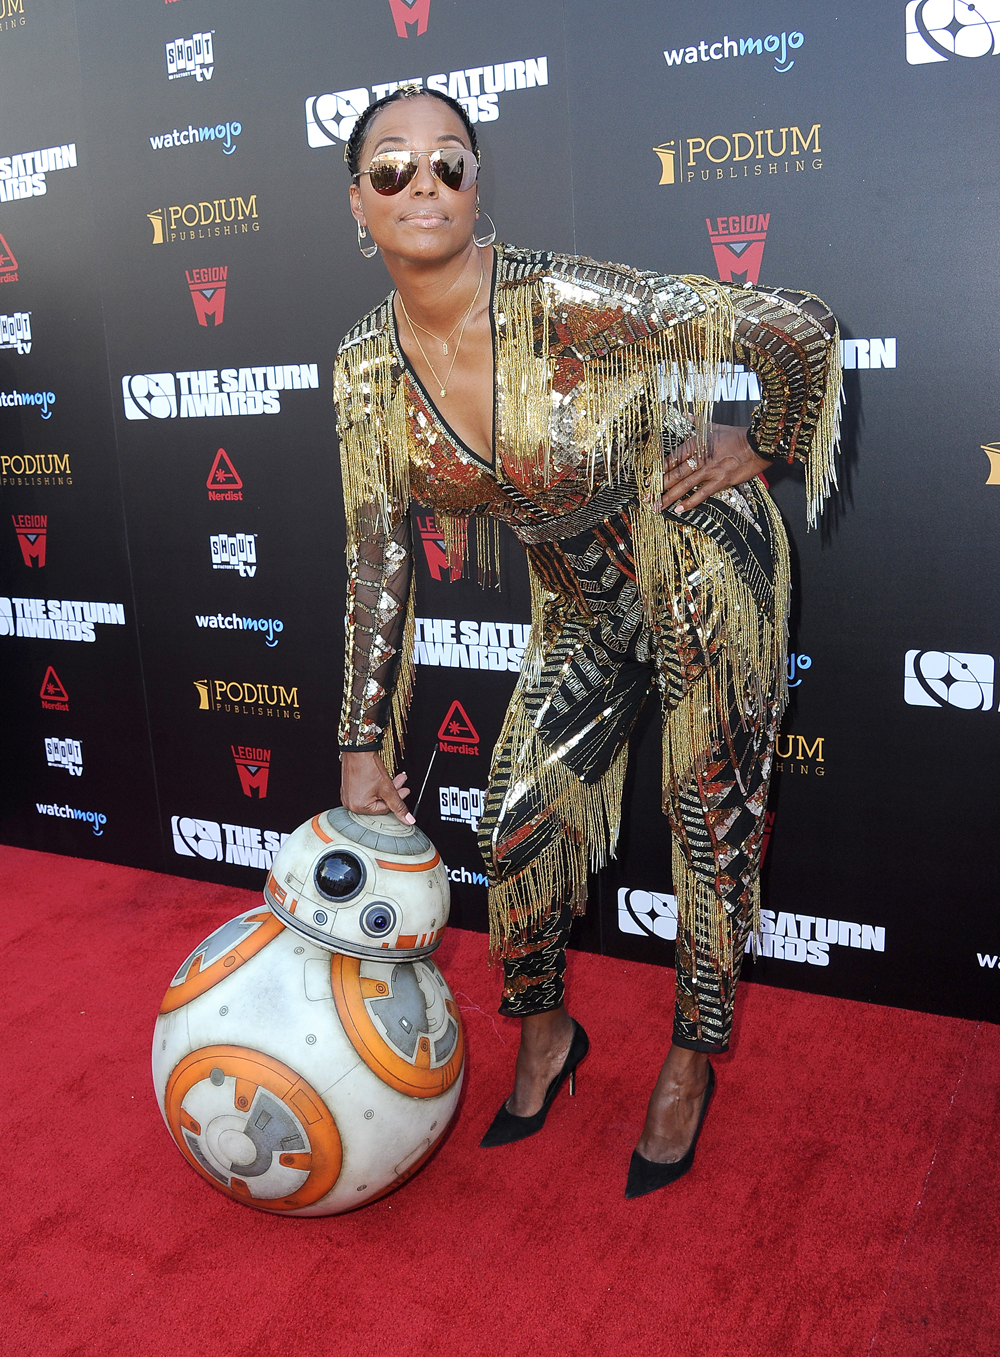 Host Aisha Tyler poses with BB-8 on the 45th Saturn Awards red carpet. [Photo: Albert L. Ortega/Getty Image]